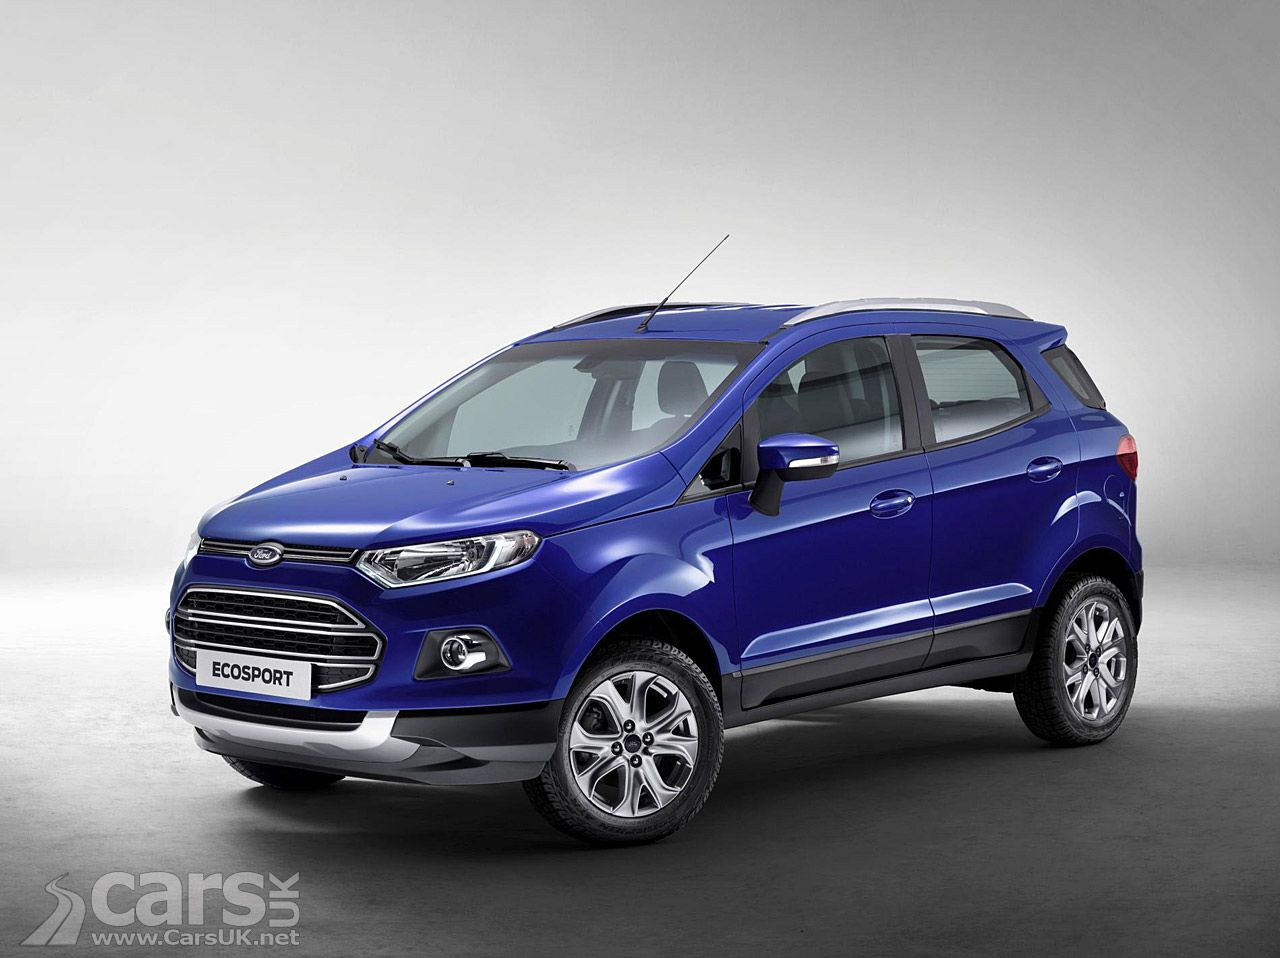 Ford Ecosport To Be Made More European To Boost Sales With